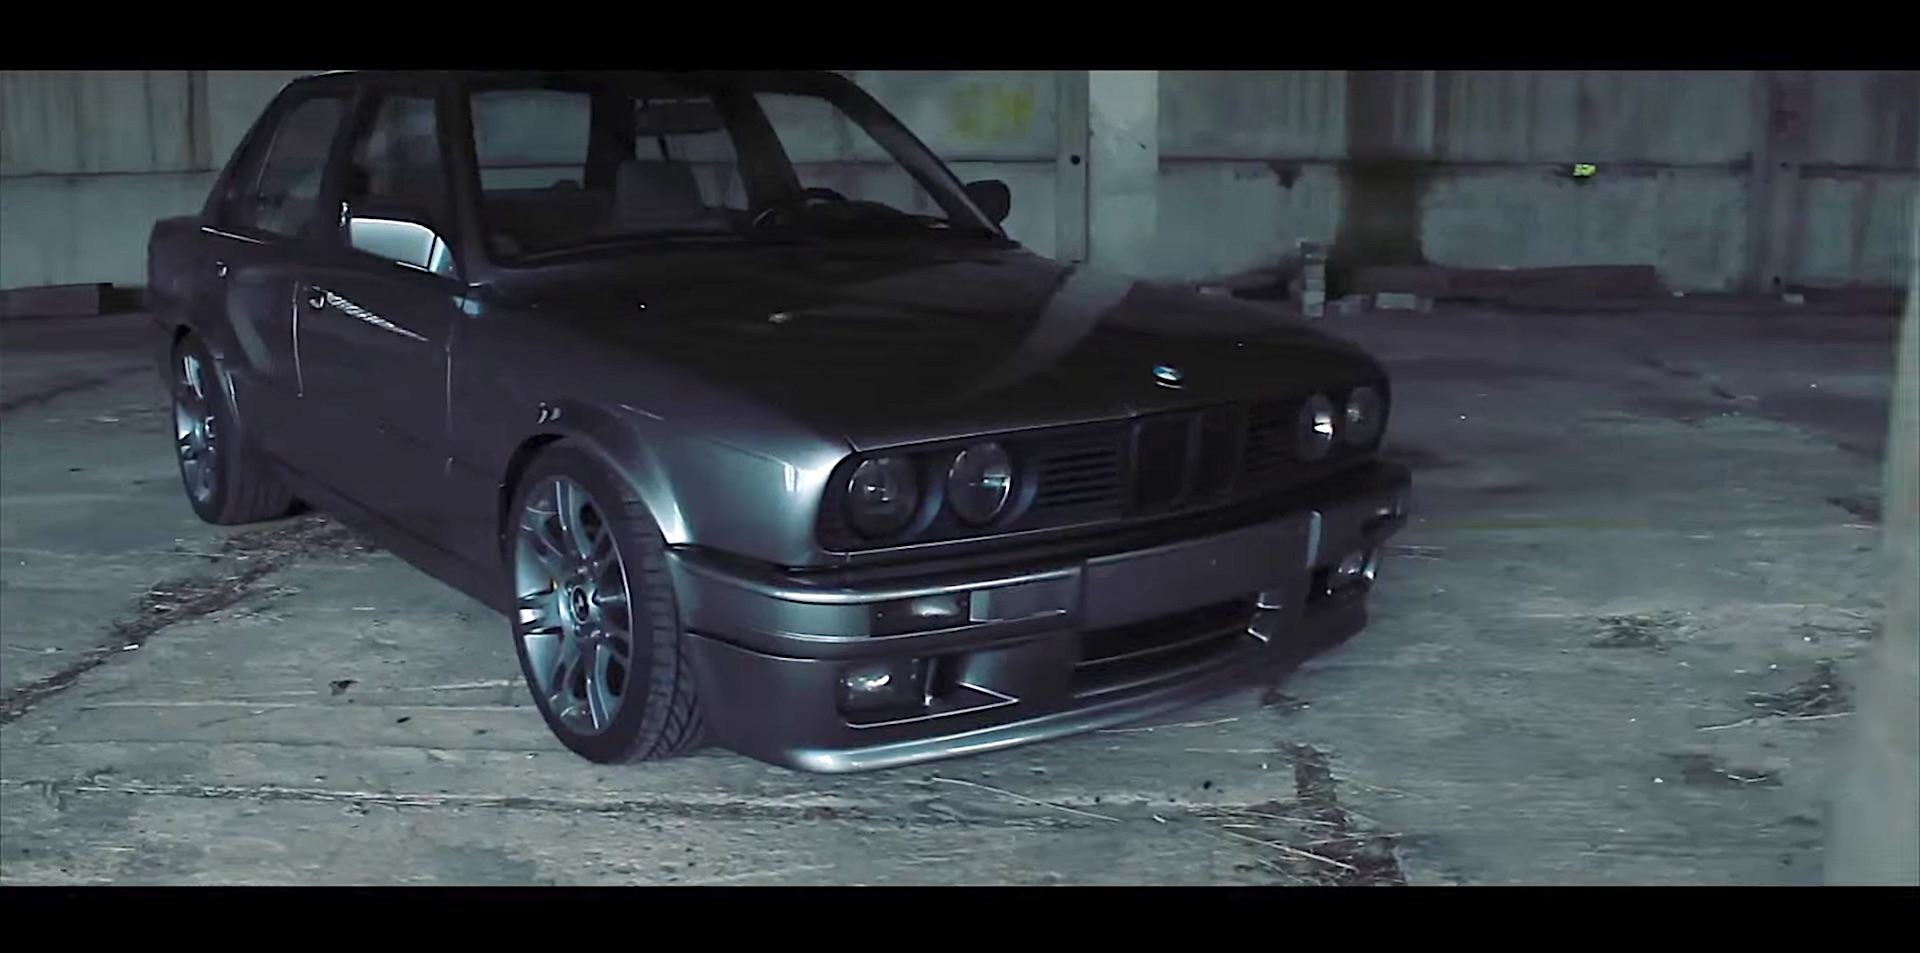 bmw e30 powered by a 4 4 liter v8 engine damnedwerk. Black Bedroom Furniture Sets. Home Design Ideas